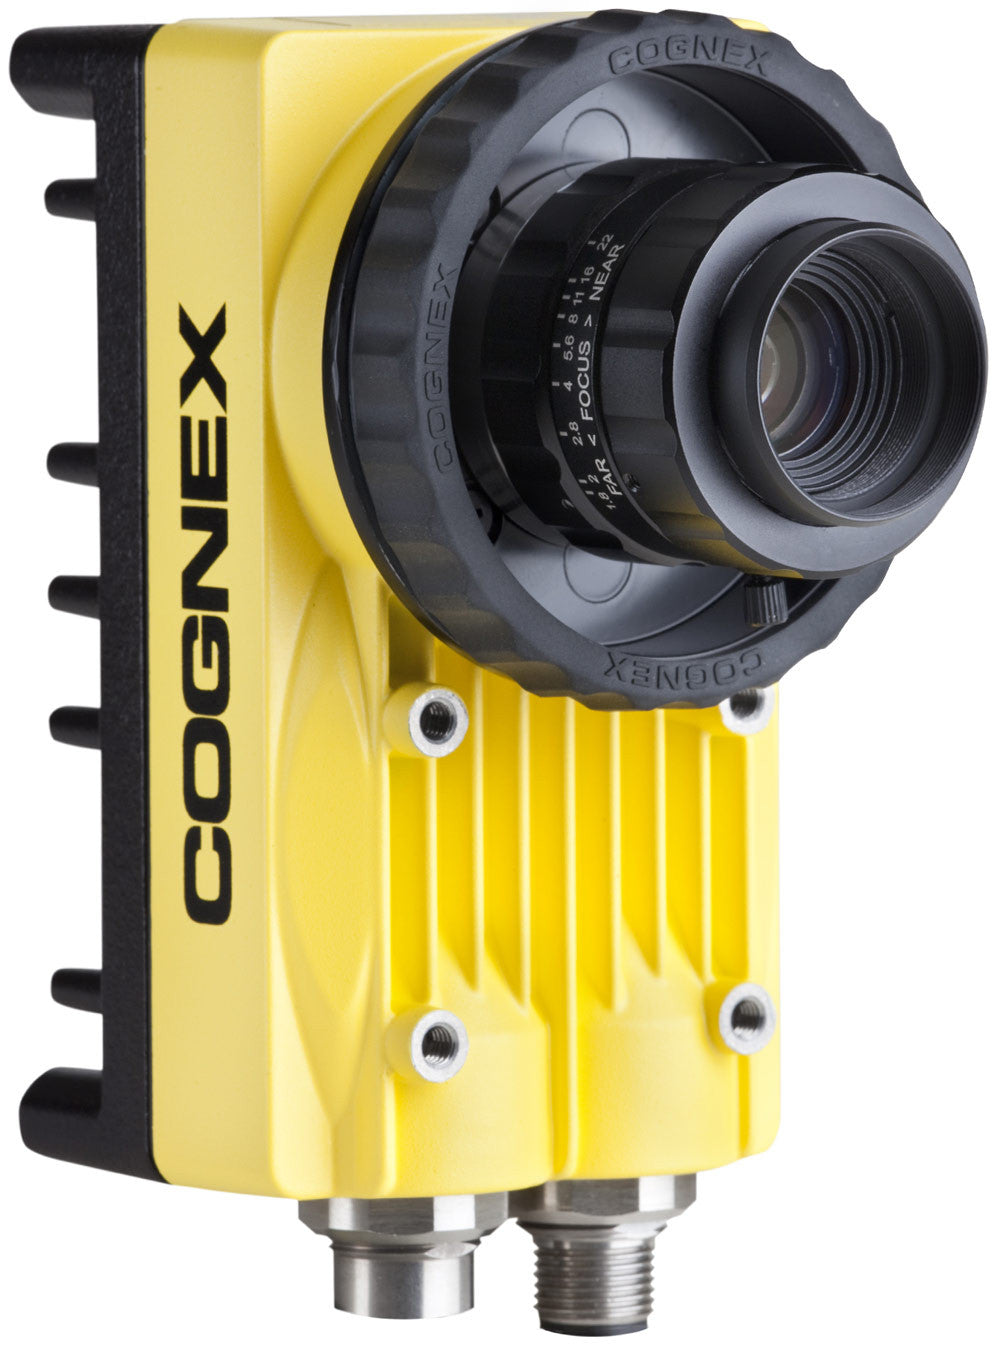 Photo of Cognex Color In-Sight Machine Vision Camera 5705-C11